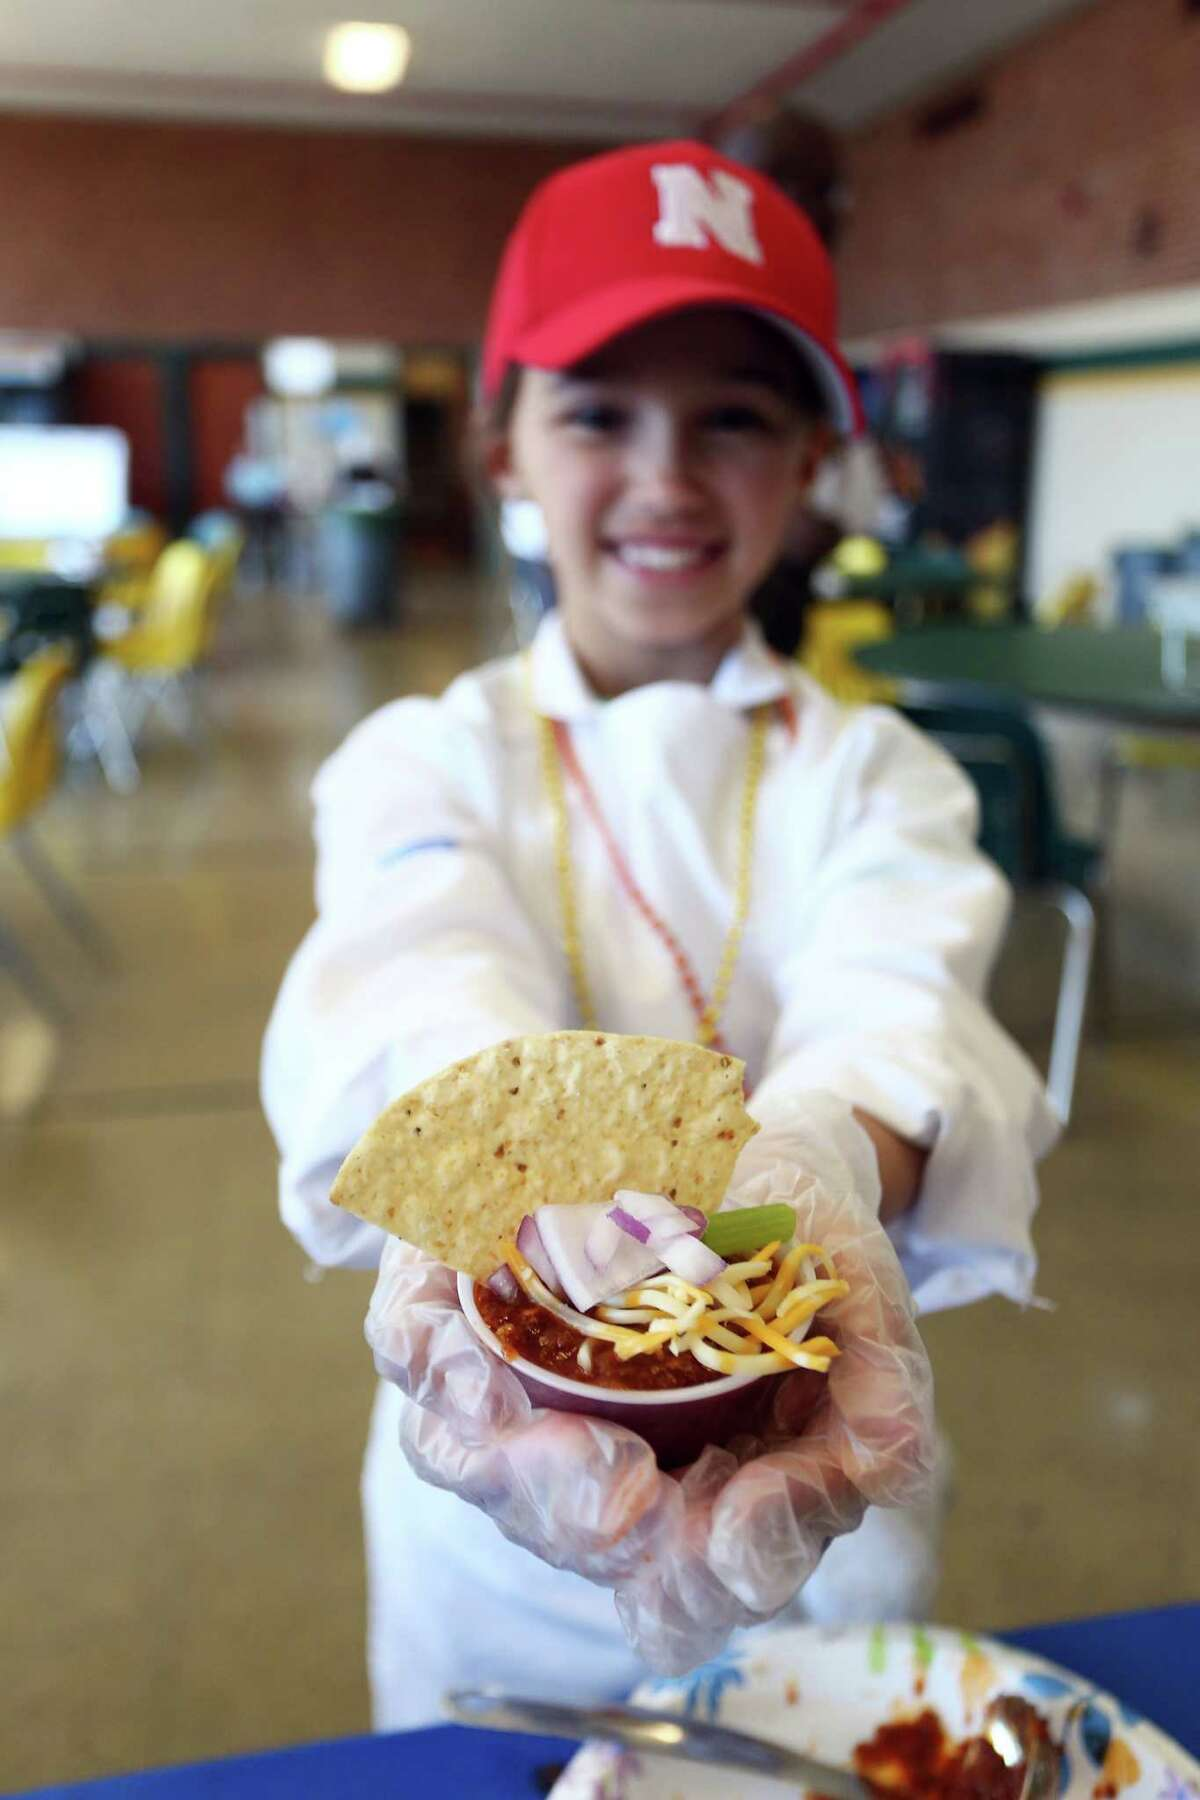 Seven-year old Alexis Adcock holds her team's submission, the properly named Daddy-Daughter Chili, at the Third Annual Charity Chili Cook-off at Trinity Catholic High School on Sunday, April 17, 2016.